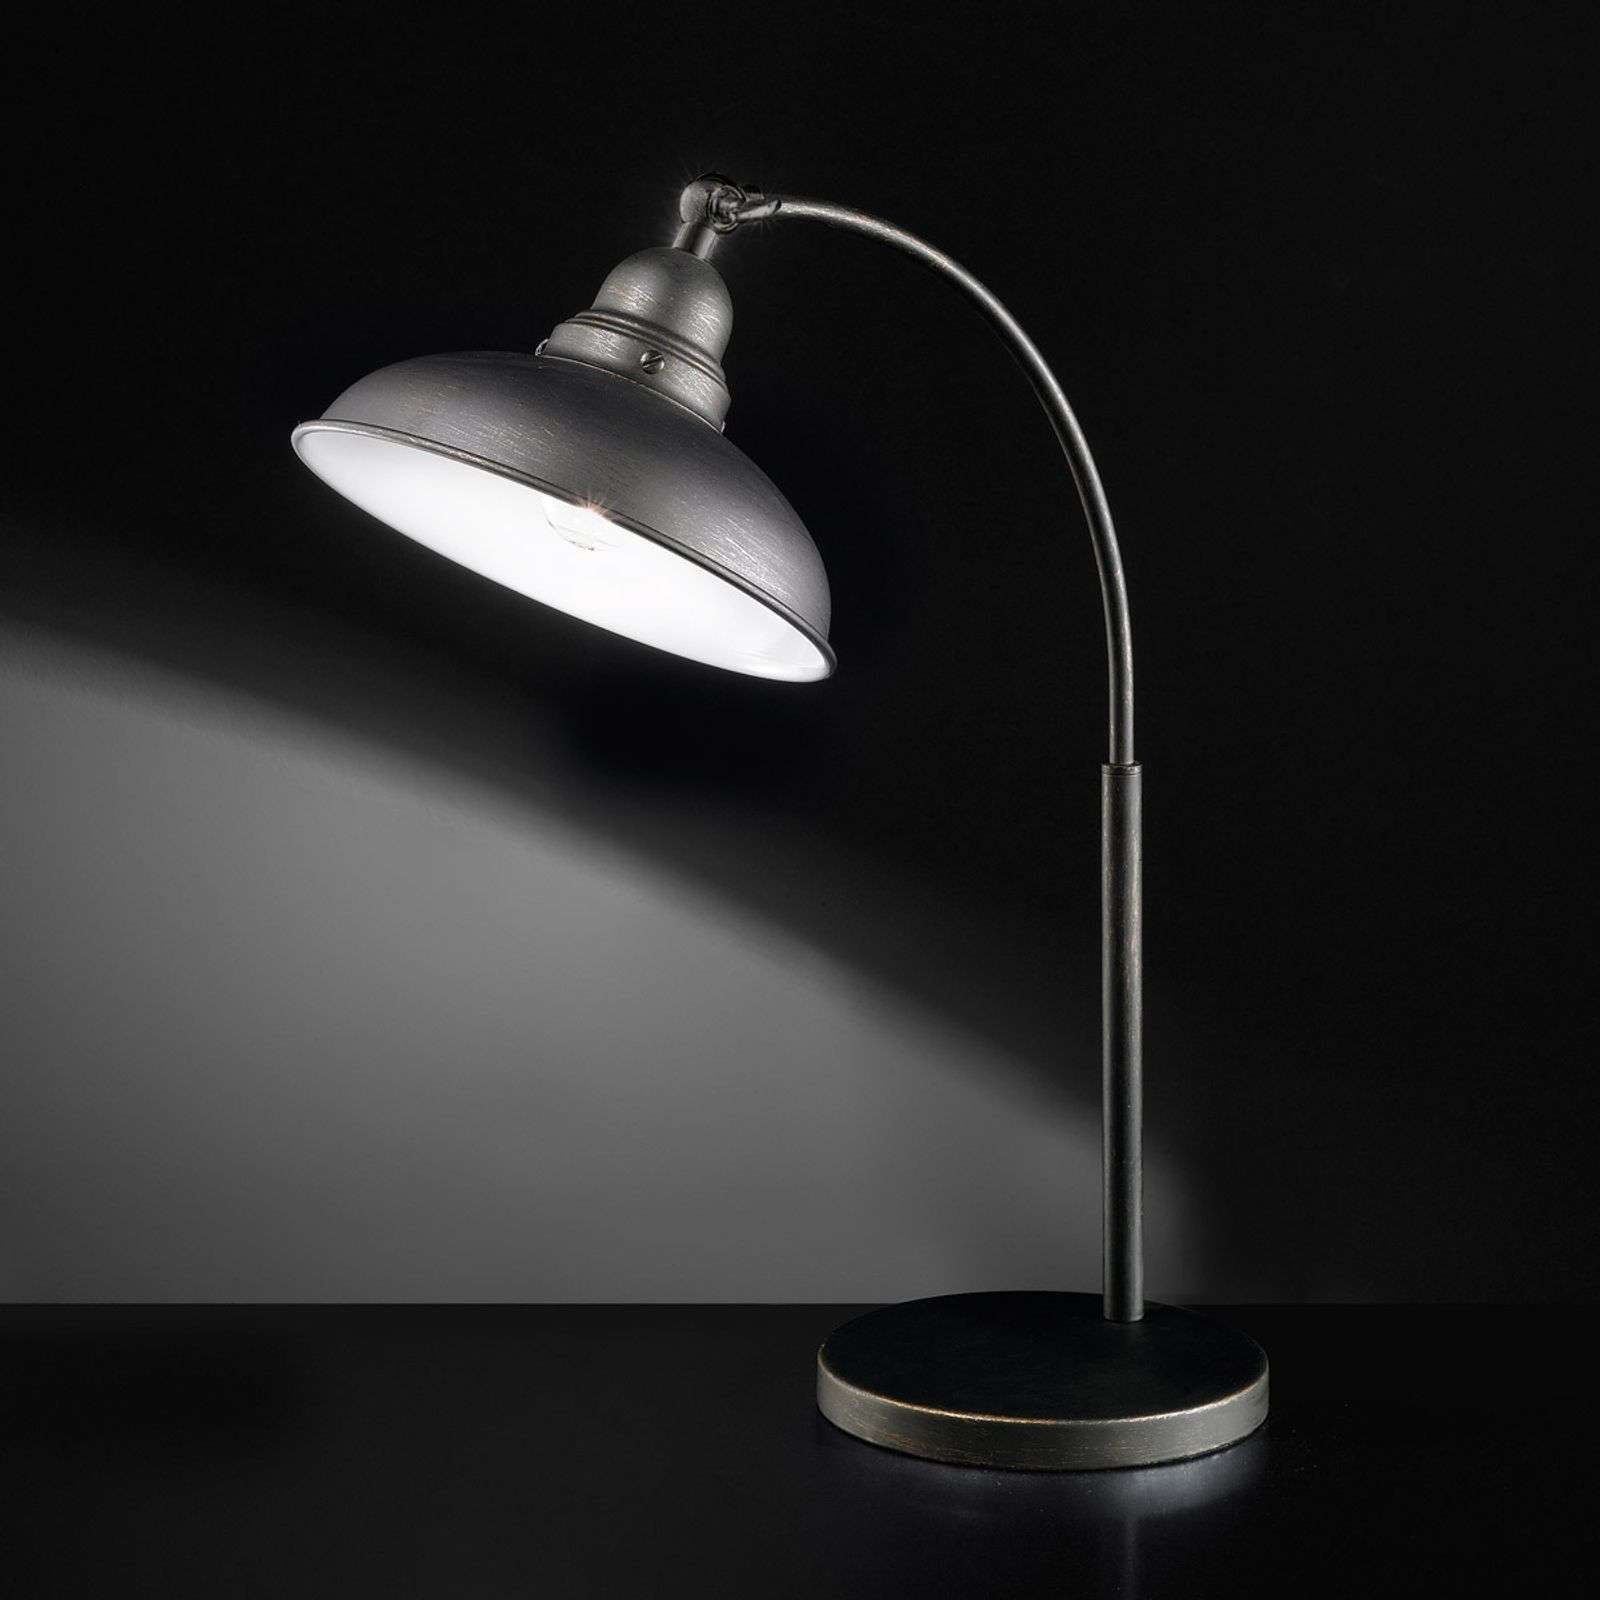 Lampe à poser Naara en design antique